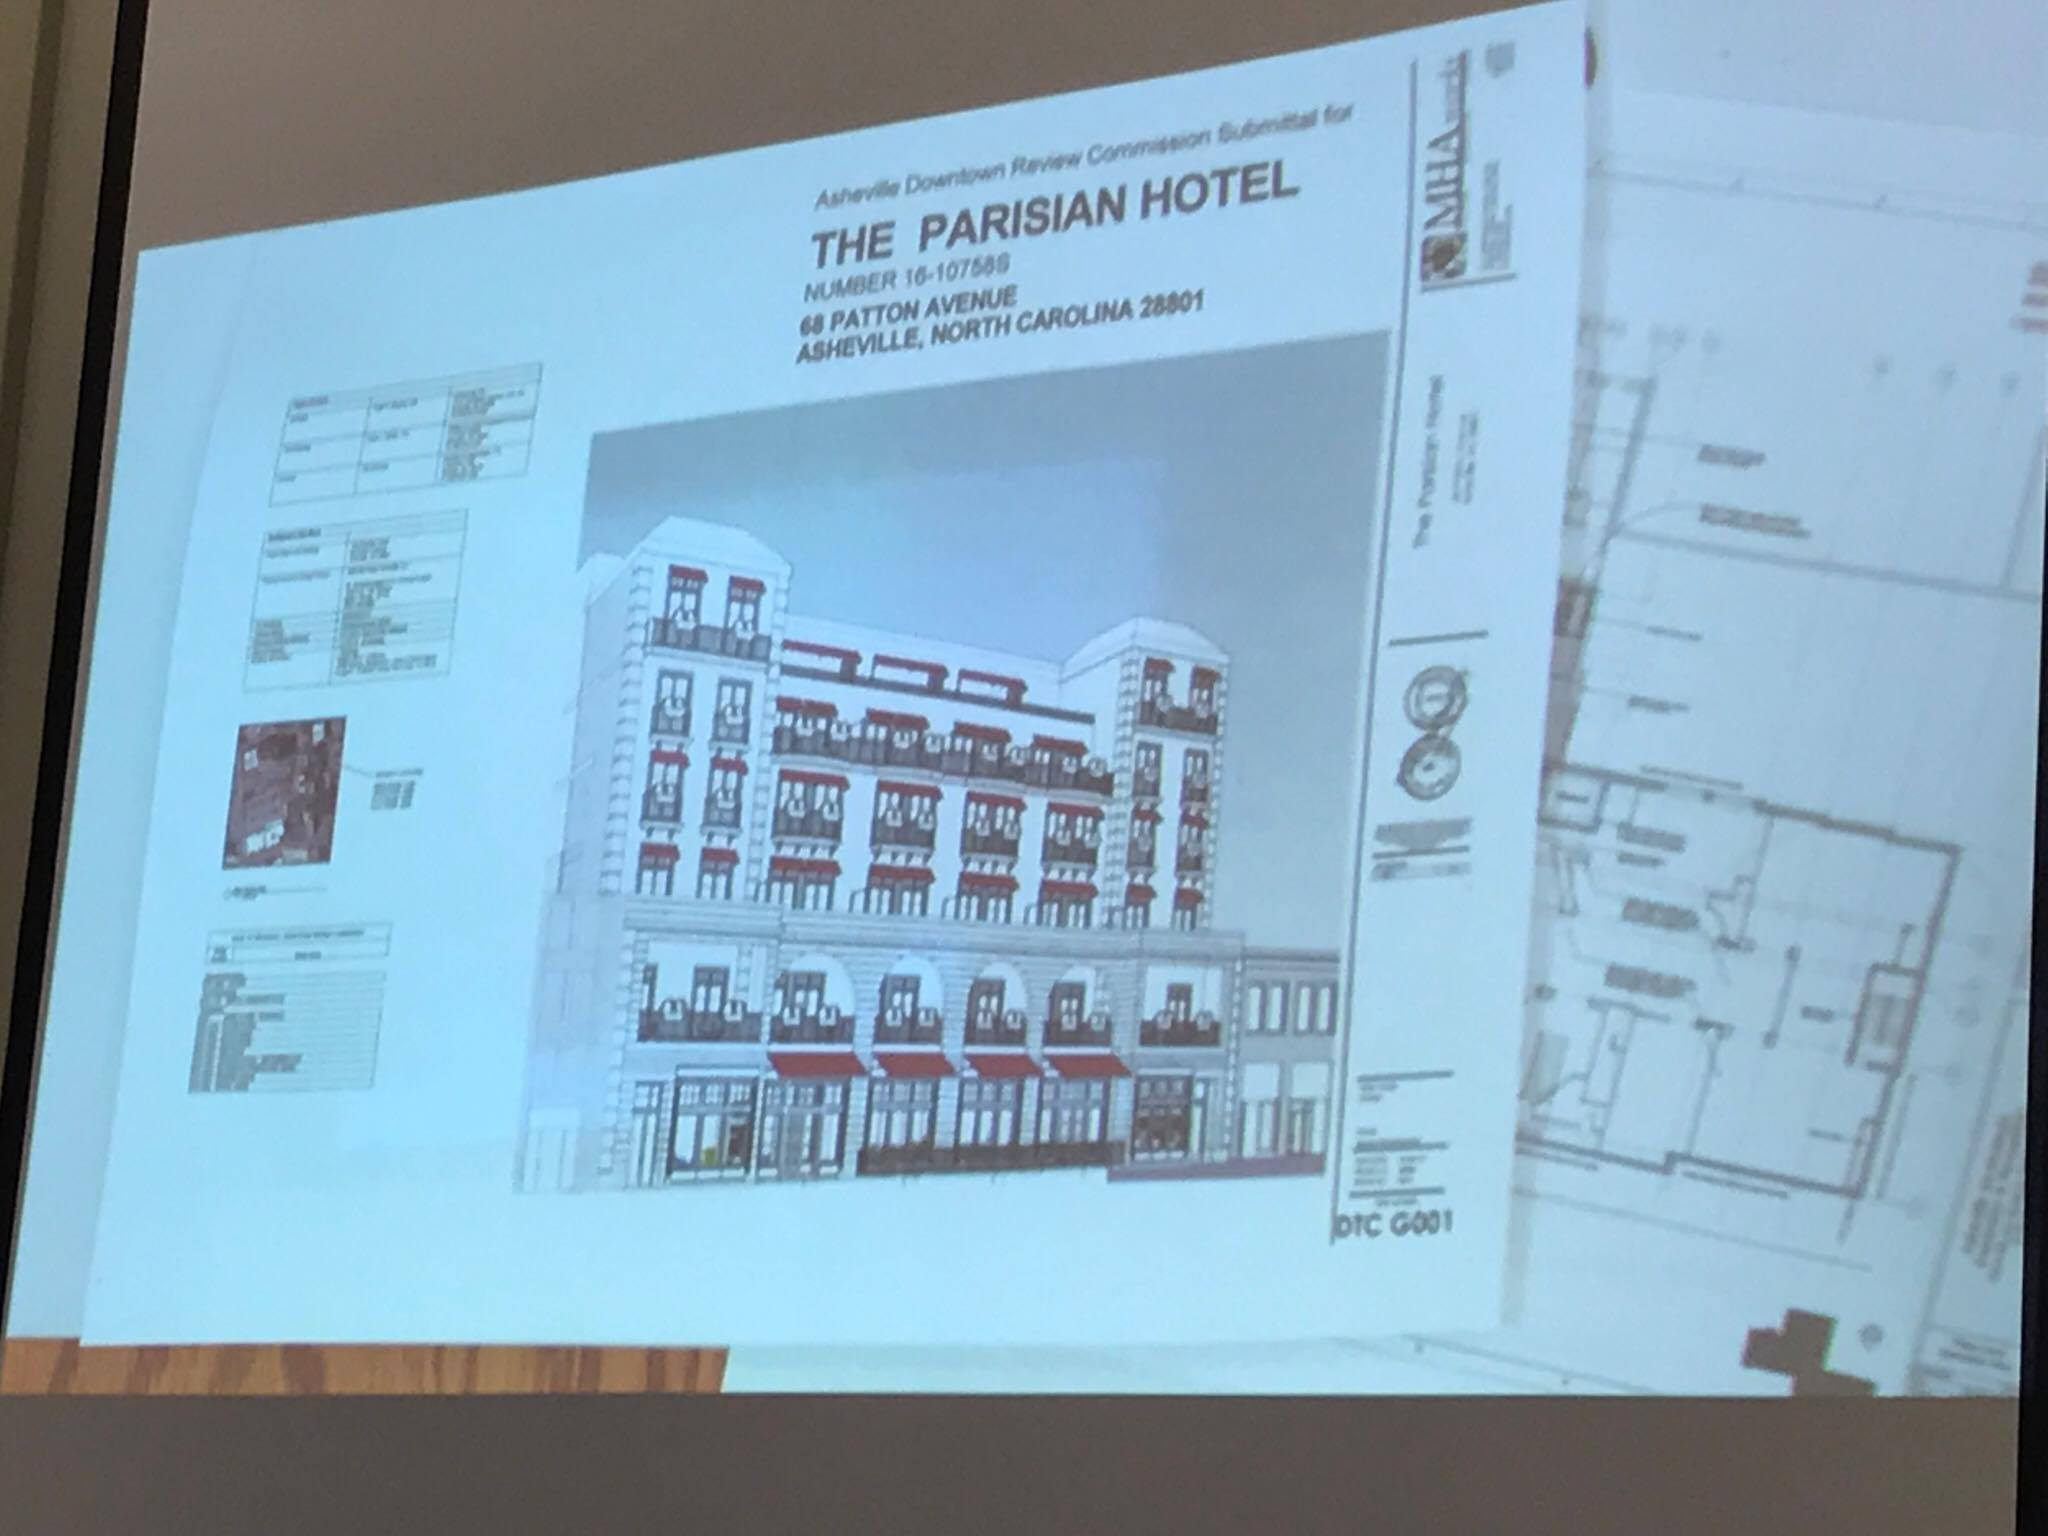 'Cheesy' hotel proposal gets thumbs down from Asheville Downtown Commission